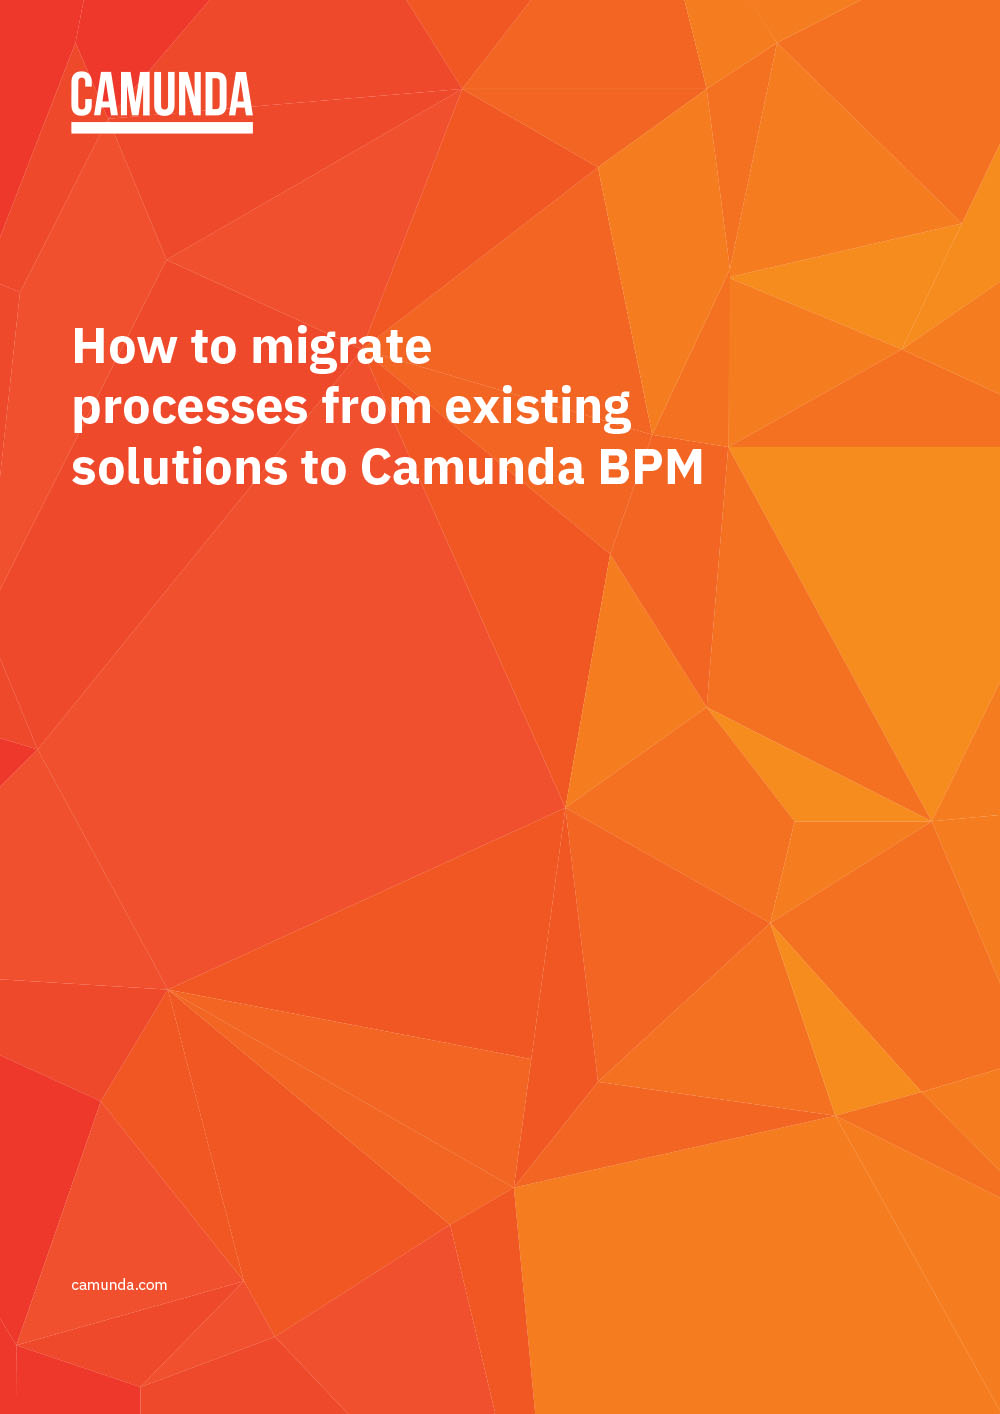 How to migrate to Camunda